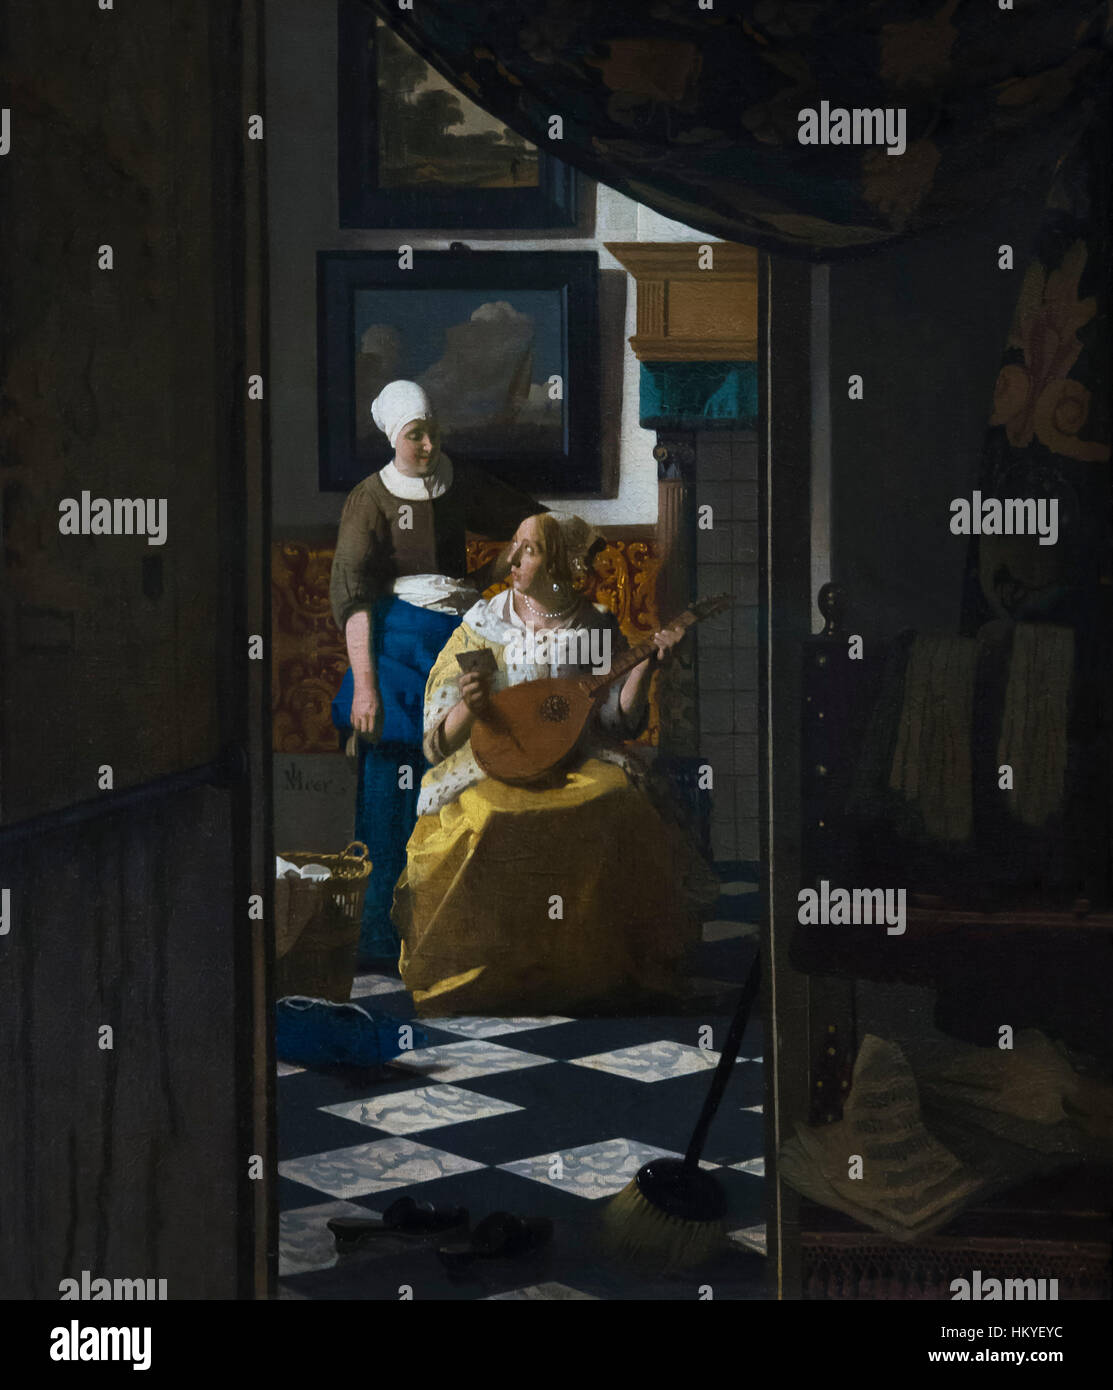 The Love Letter, by Johannes Vermeer, circa 1669-70, oil on canvas, Rijksmuseum, Amsterdam, Netherlands, Europe, - Stock Image